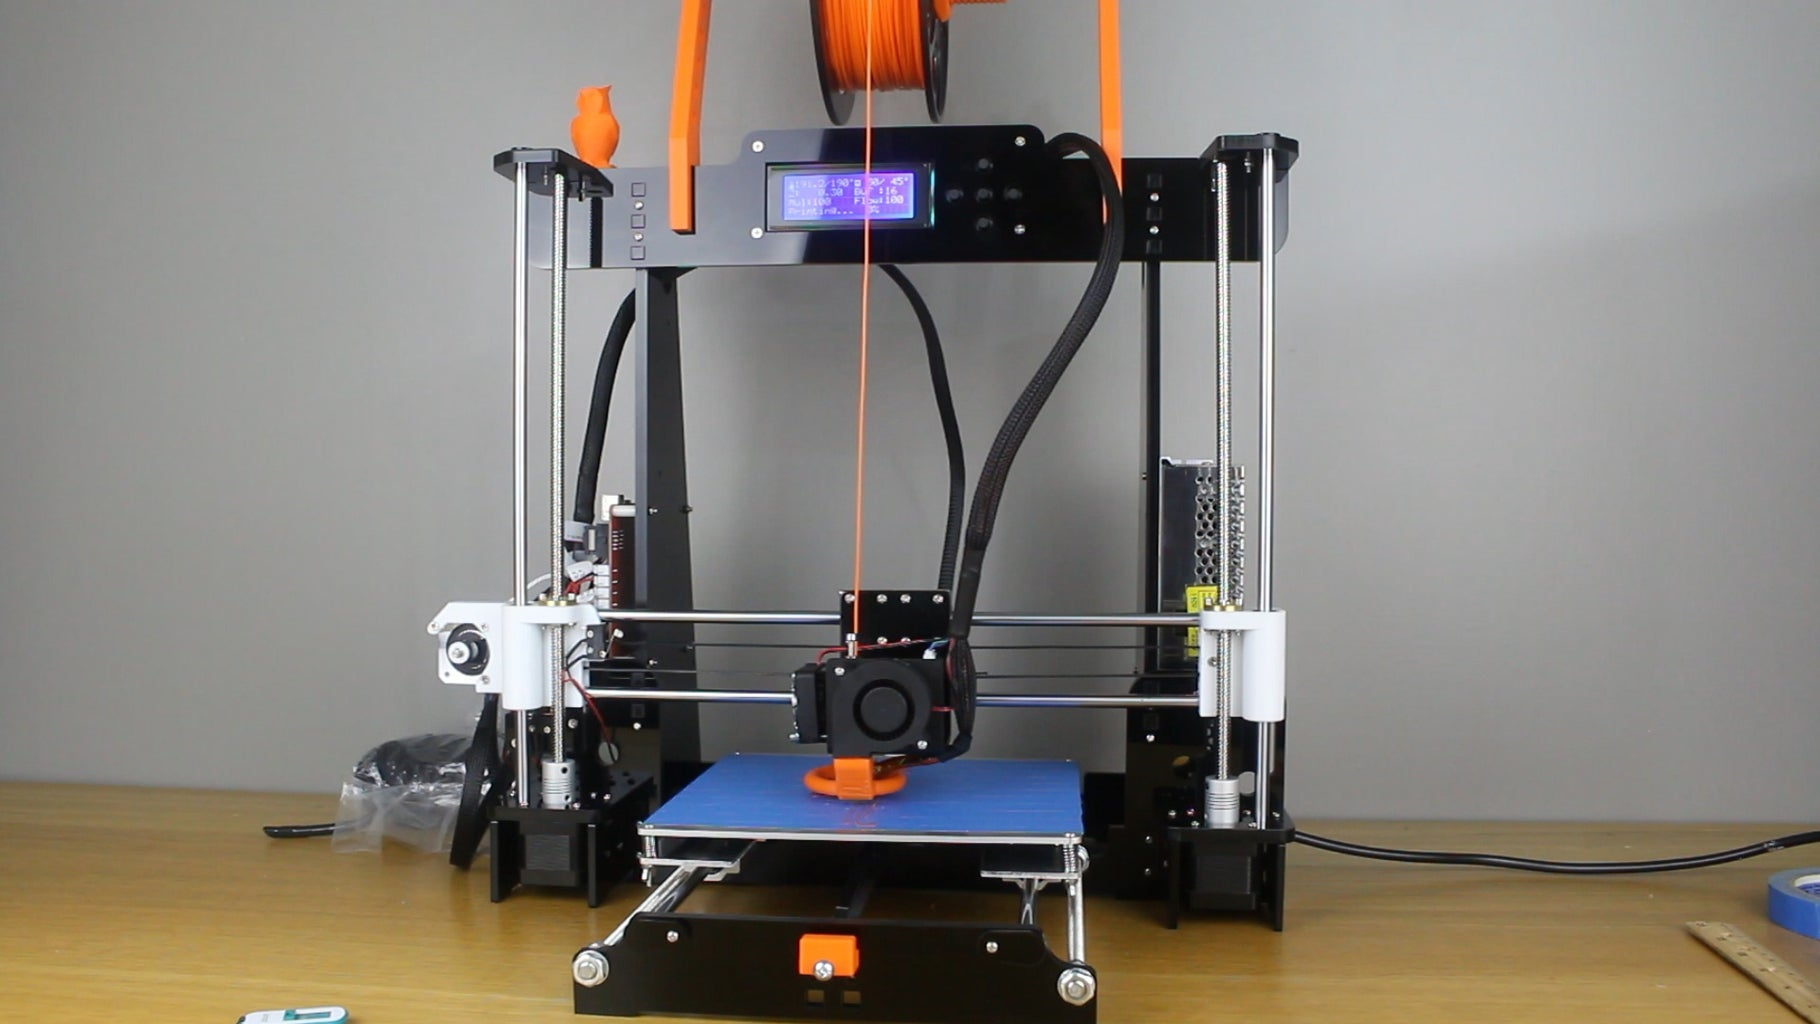 How to Use Your 3D Printer